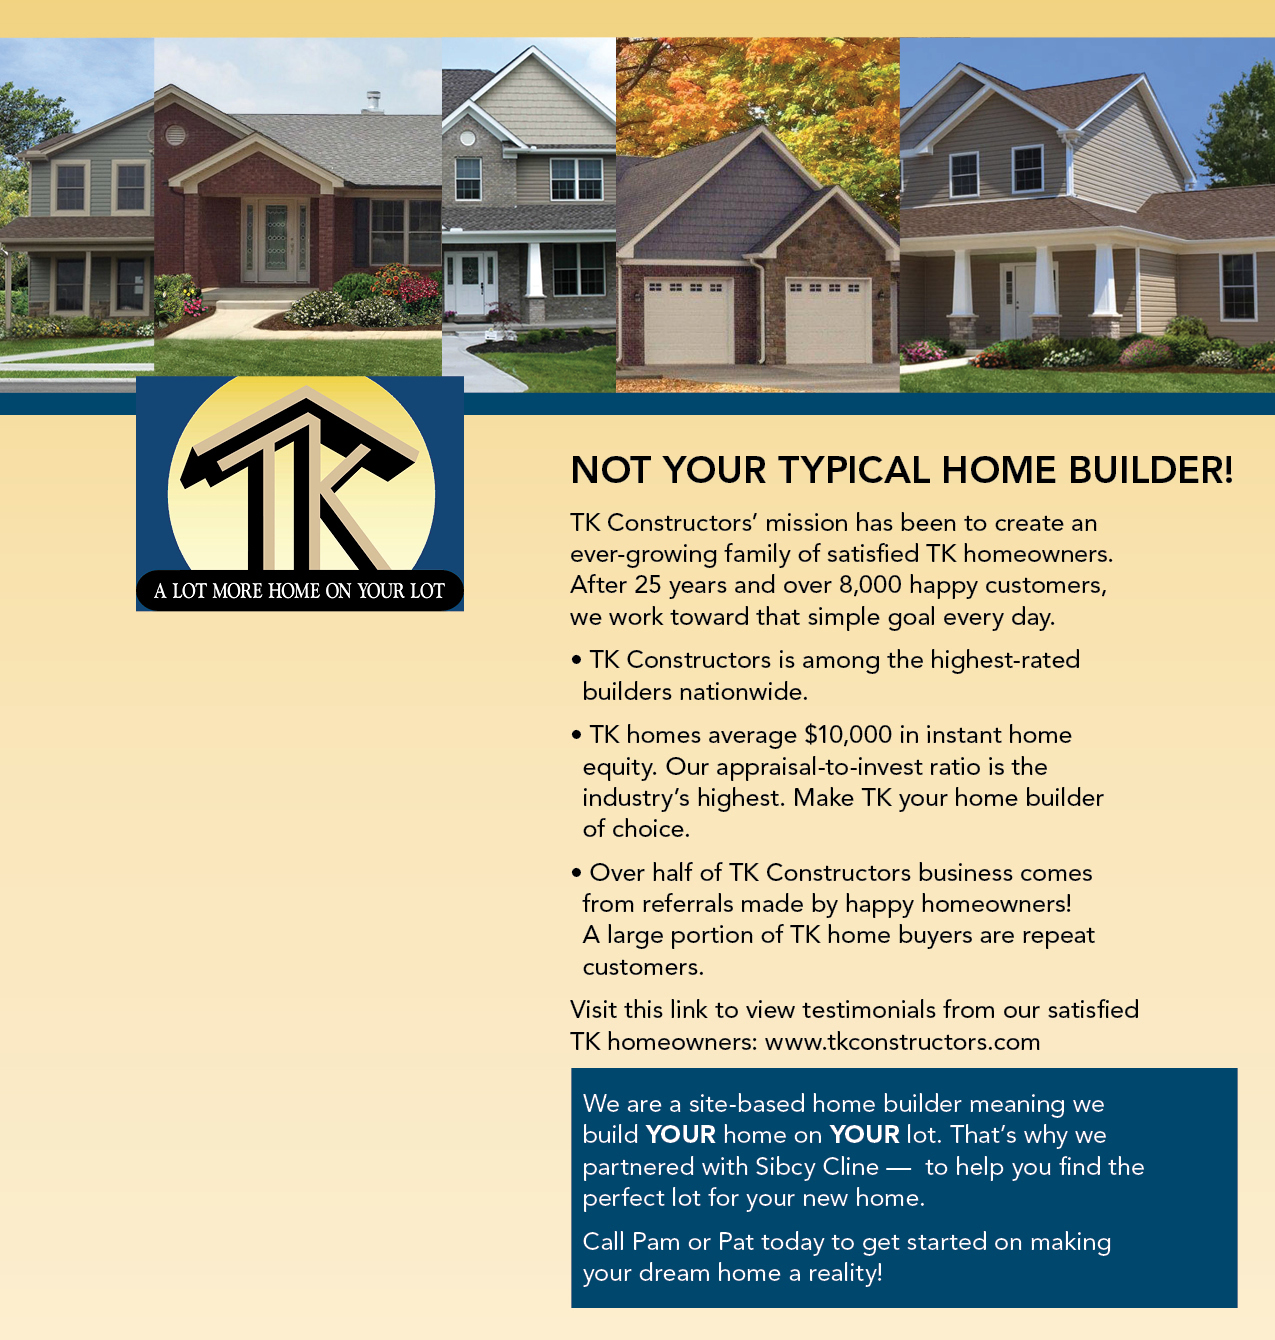 TK Constructors is a site-based home builder. We build your home on your lot.